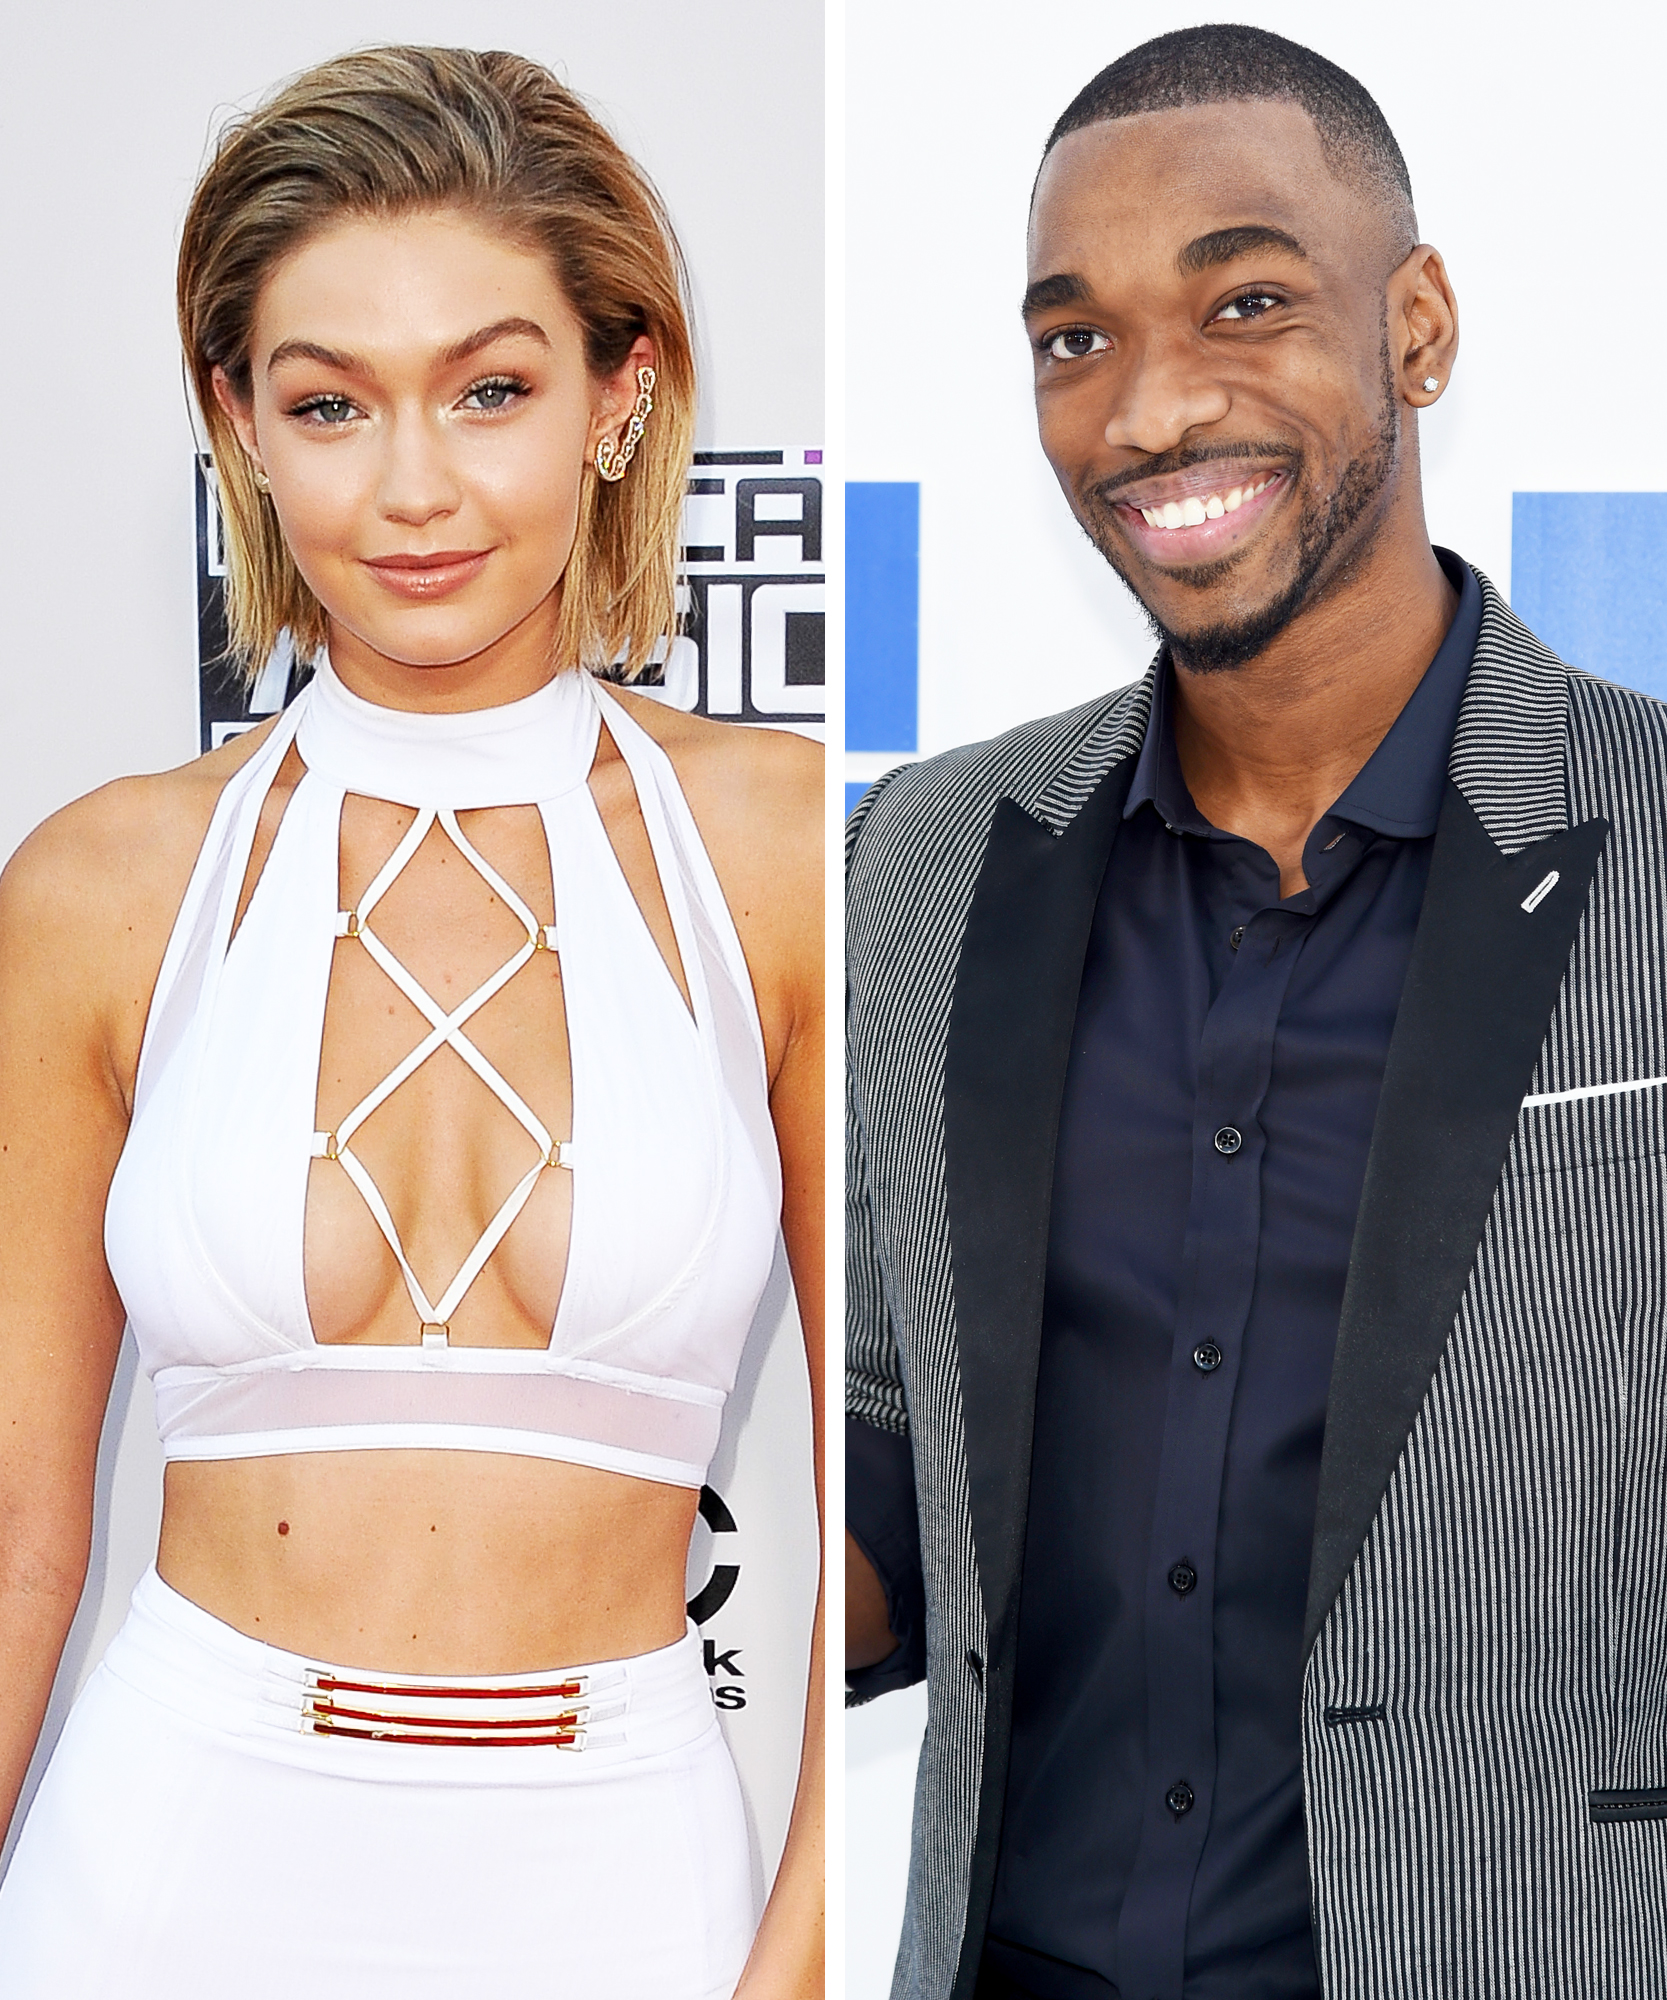 Gigi Hadid Jay Pharoah 2-Up - Lead 2016